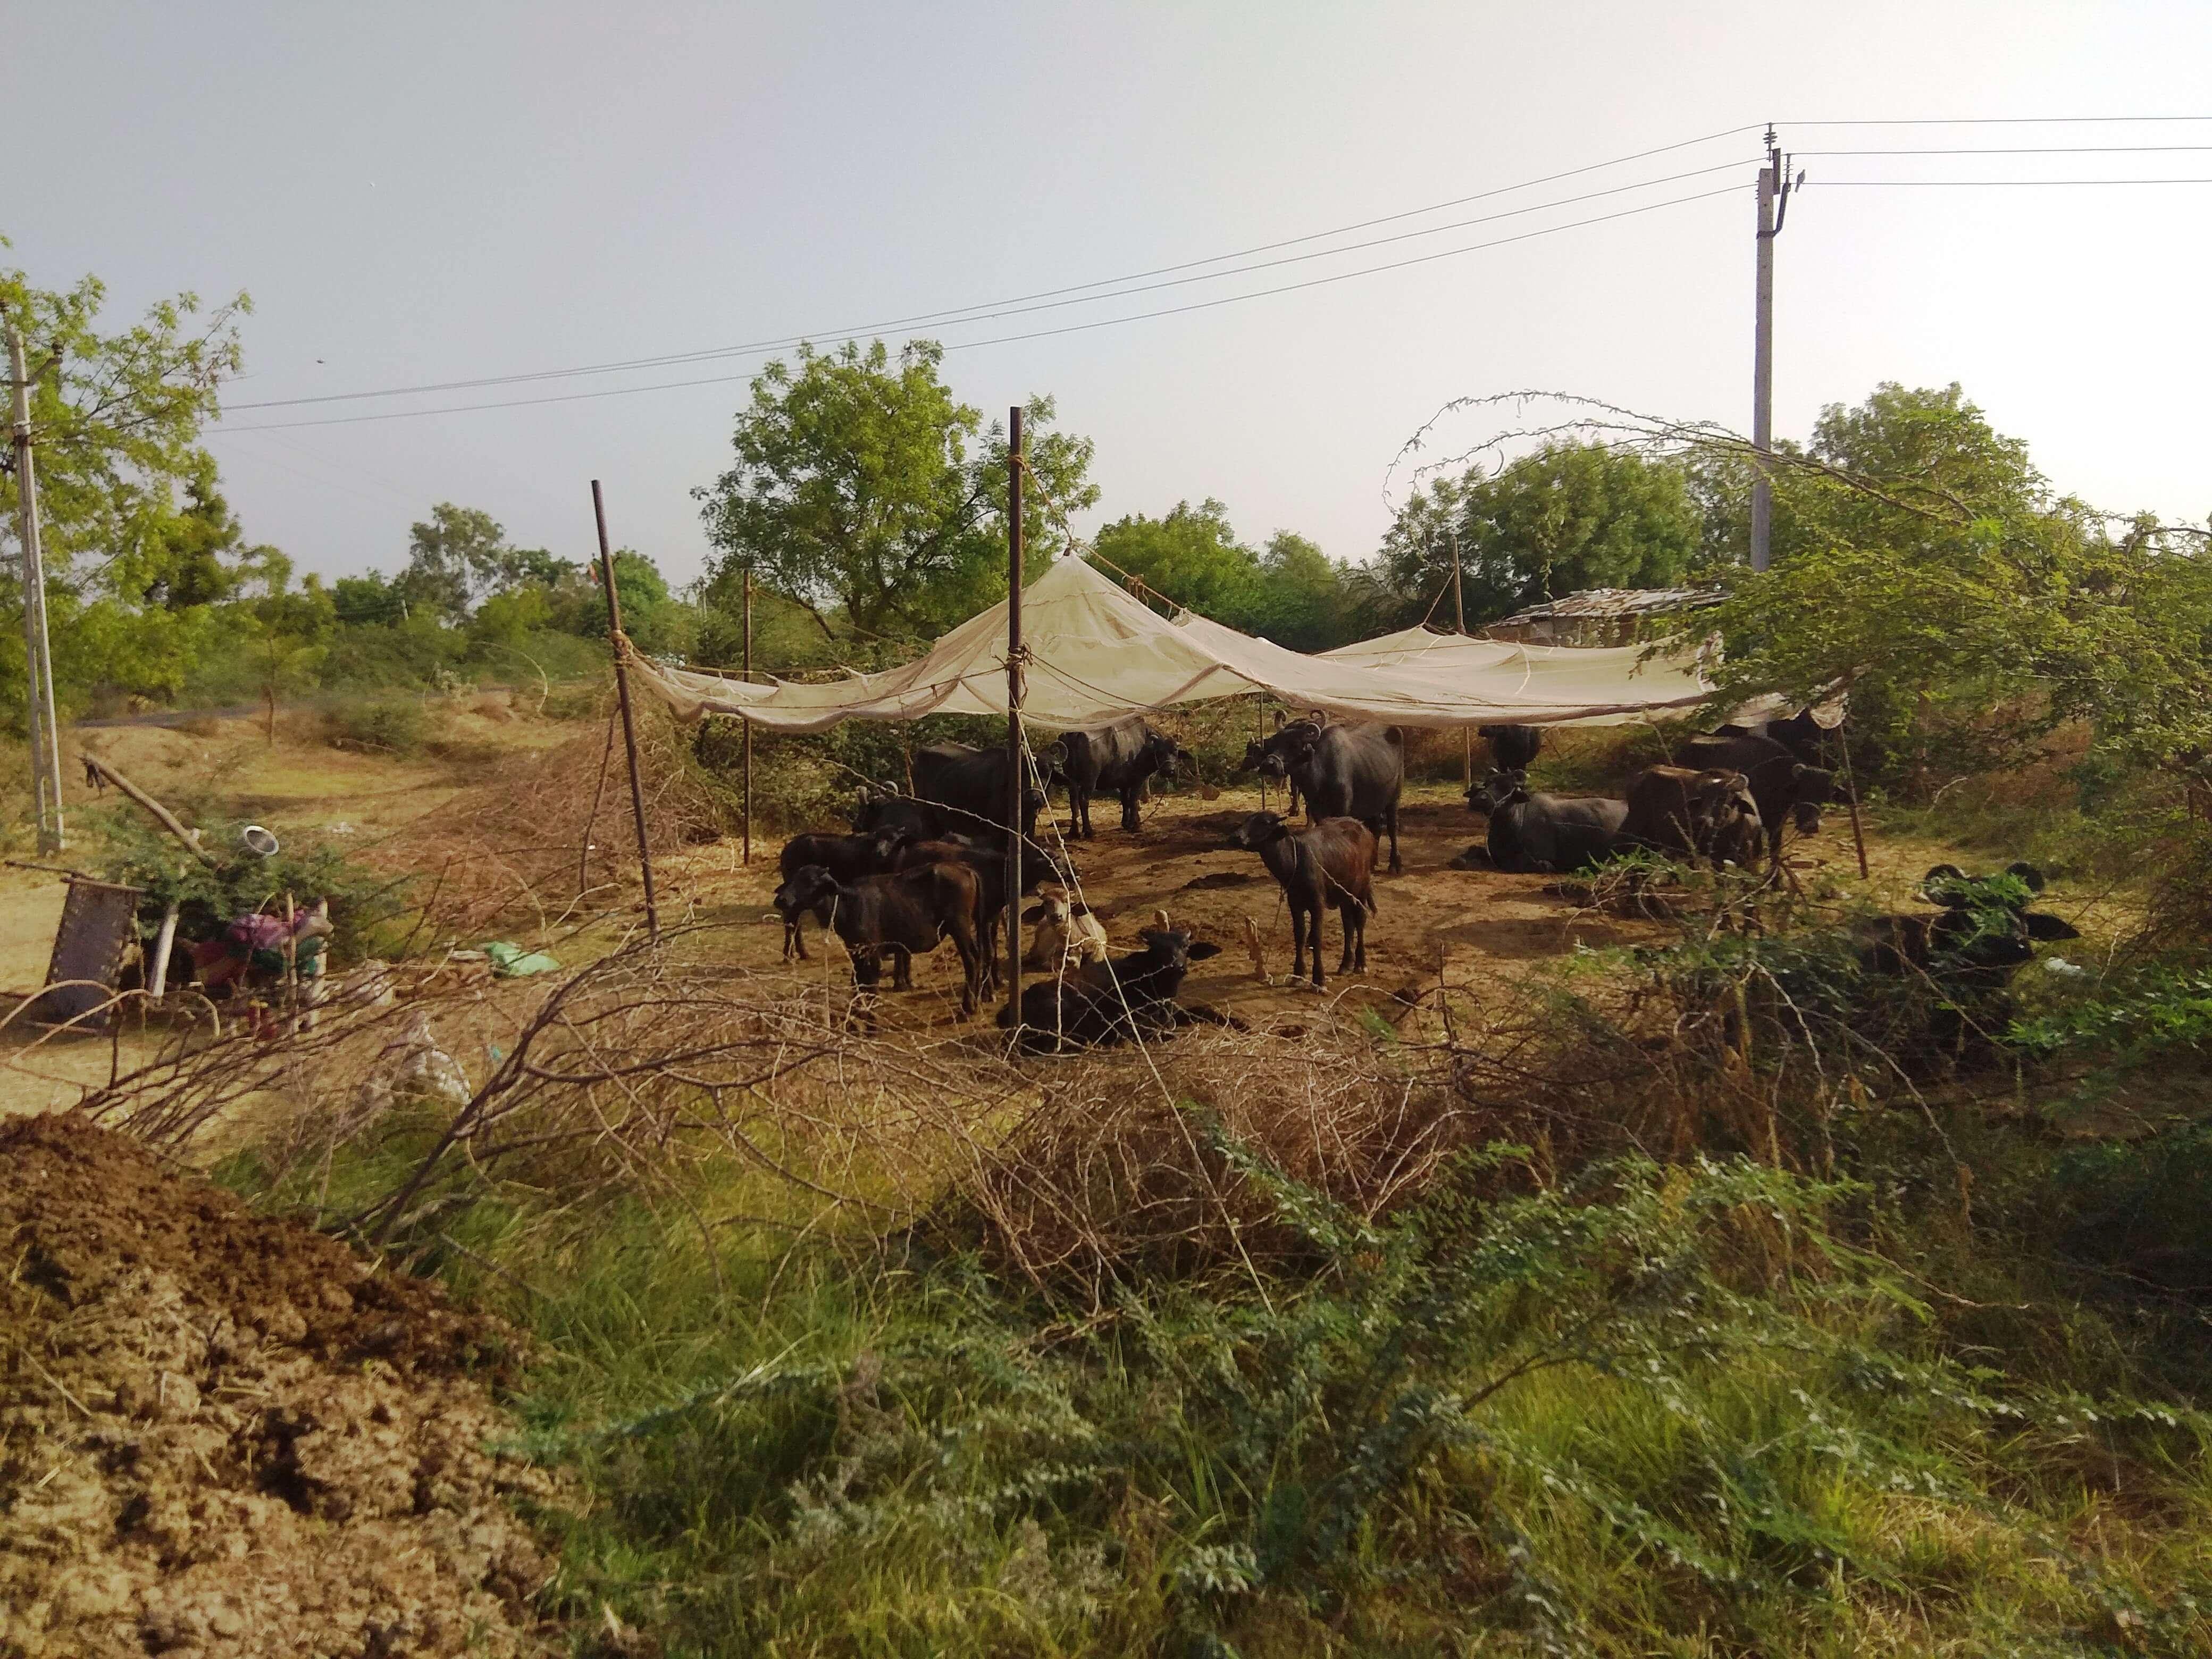 Cattle%20base%20distant%20from%20nomadic%20shelter%20(1).jpeg